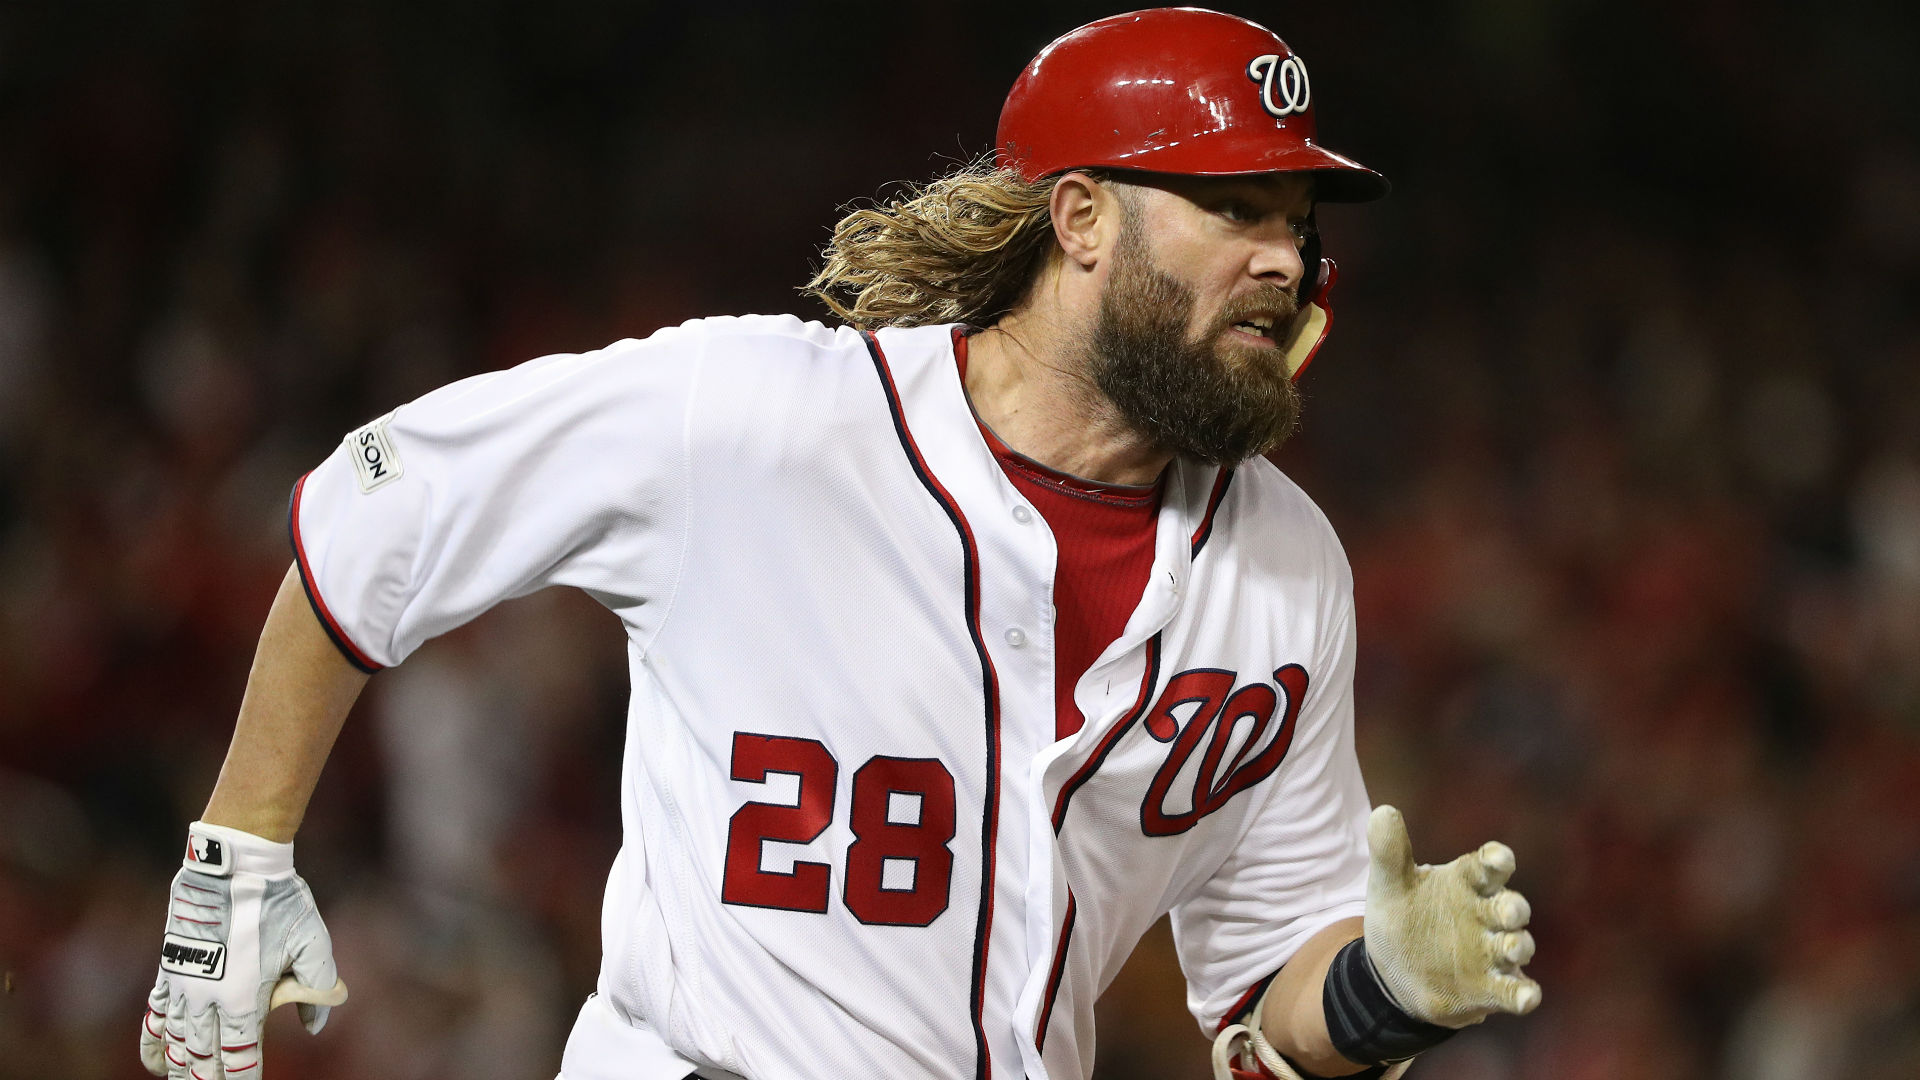 Jayson Werth announces retirement from MLB after 15 years